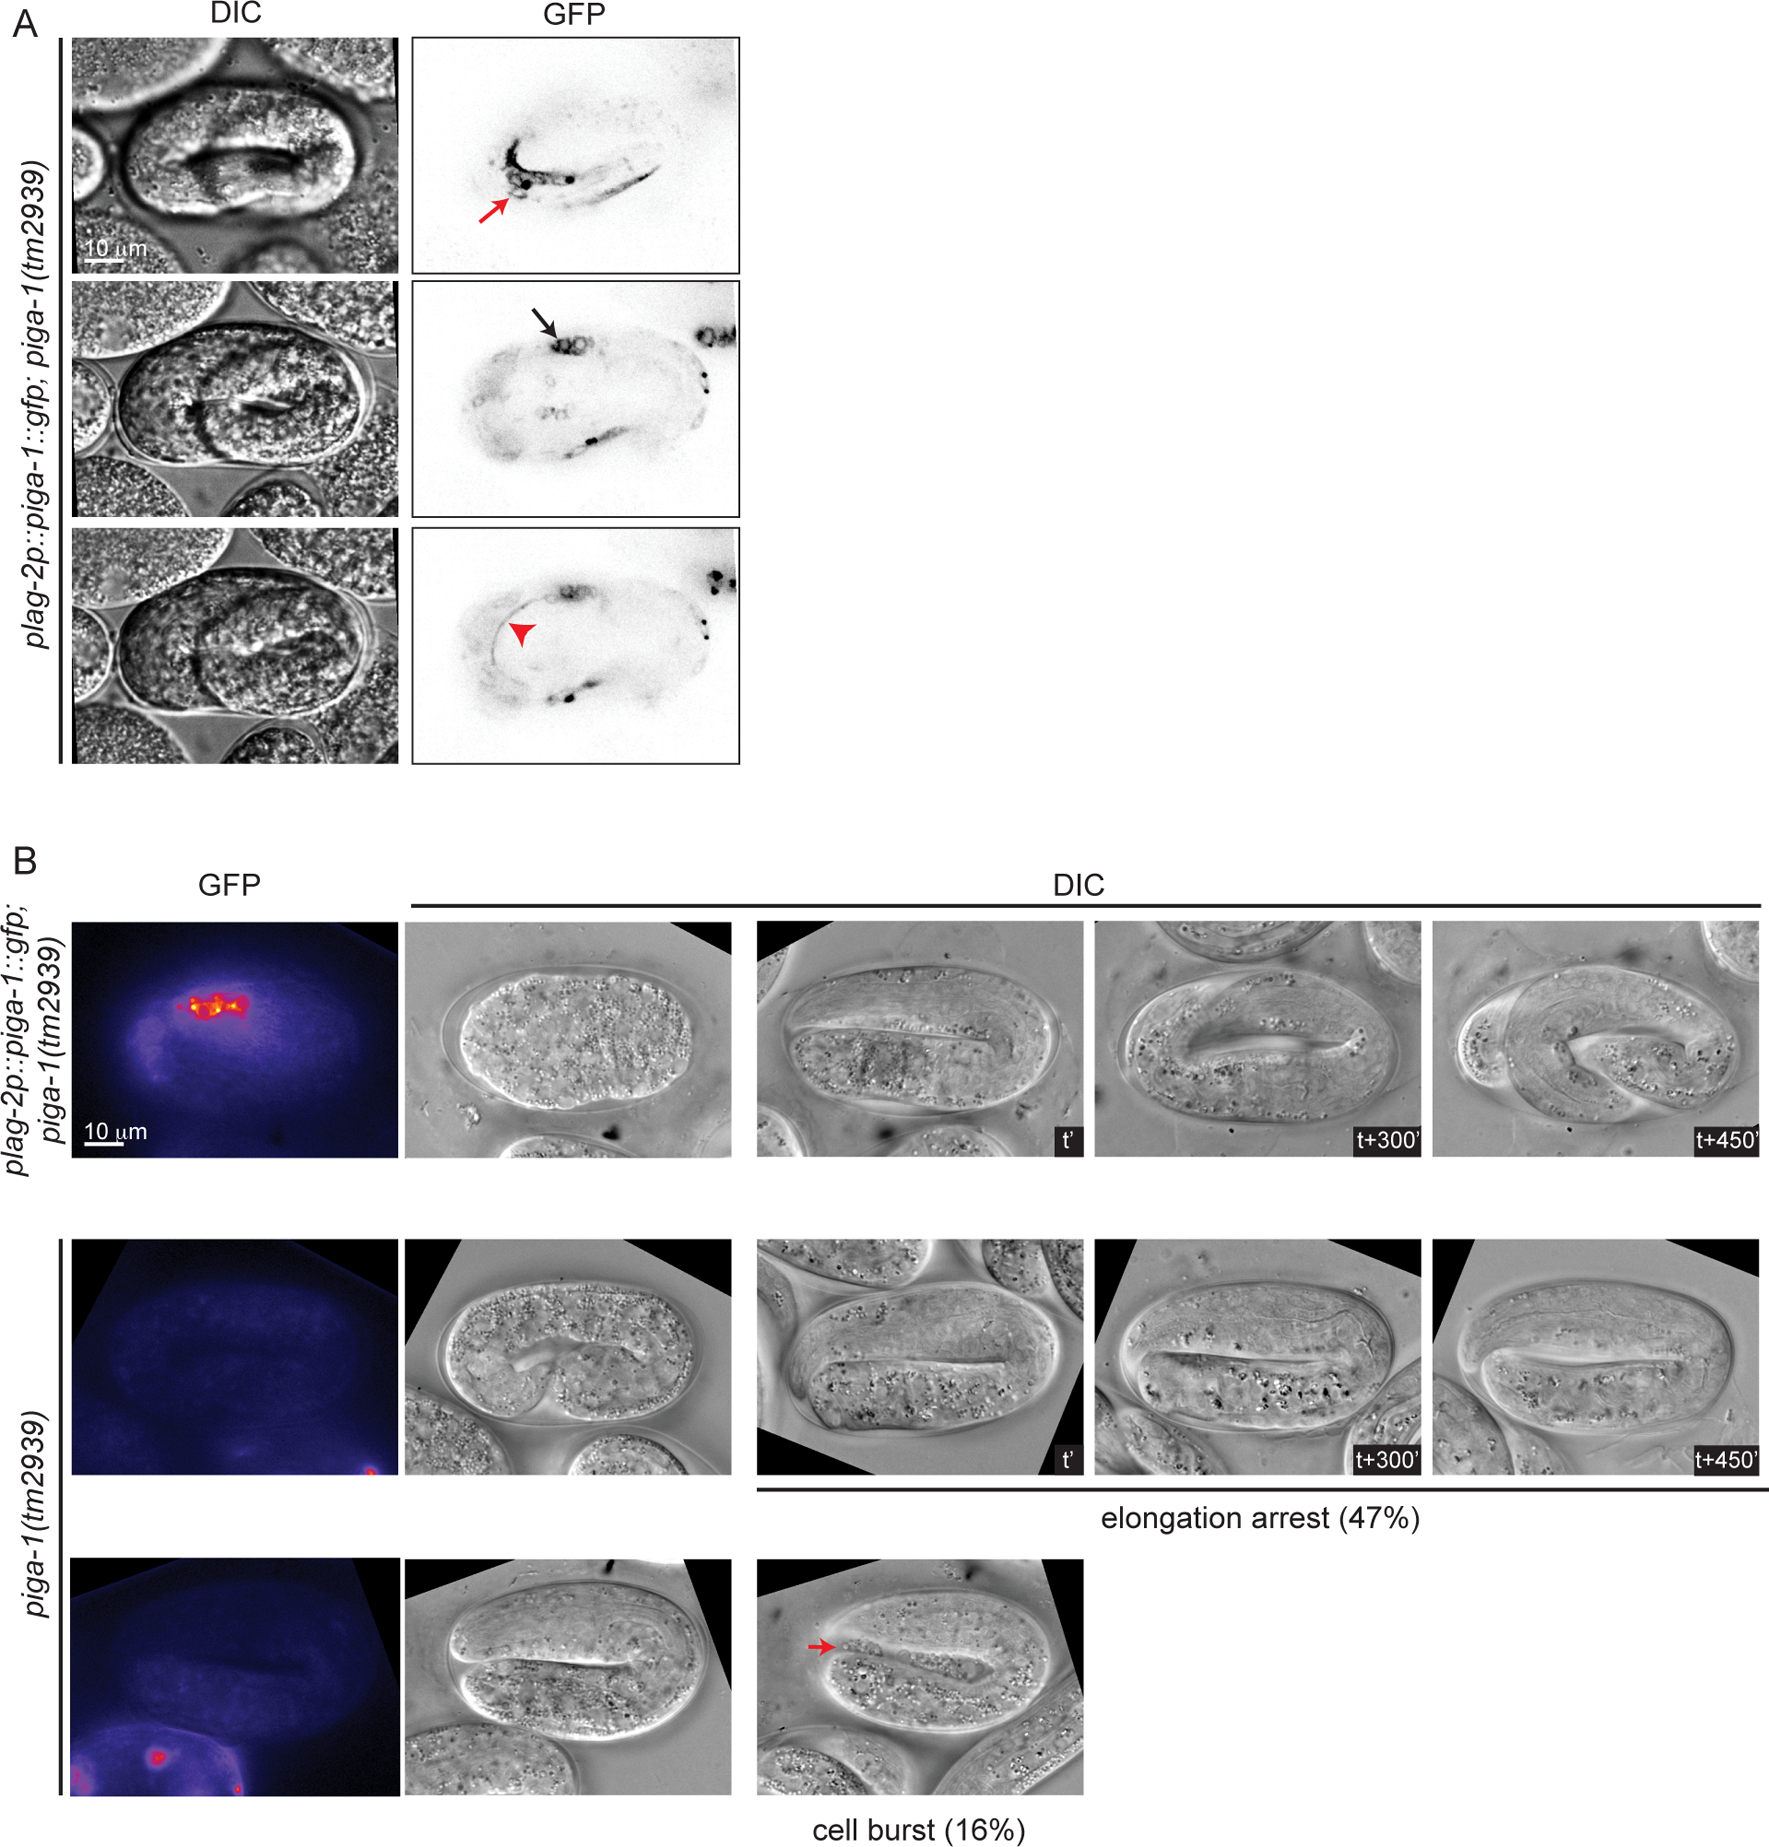 Loss of function of <i>piga-1</i> shows similar phenotypes to <i>pigv-1(qm34)</i> mutant embryos.